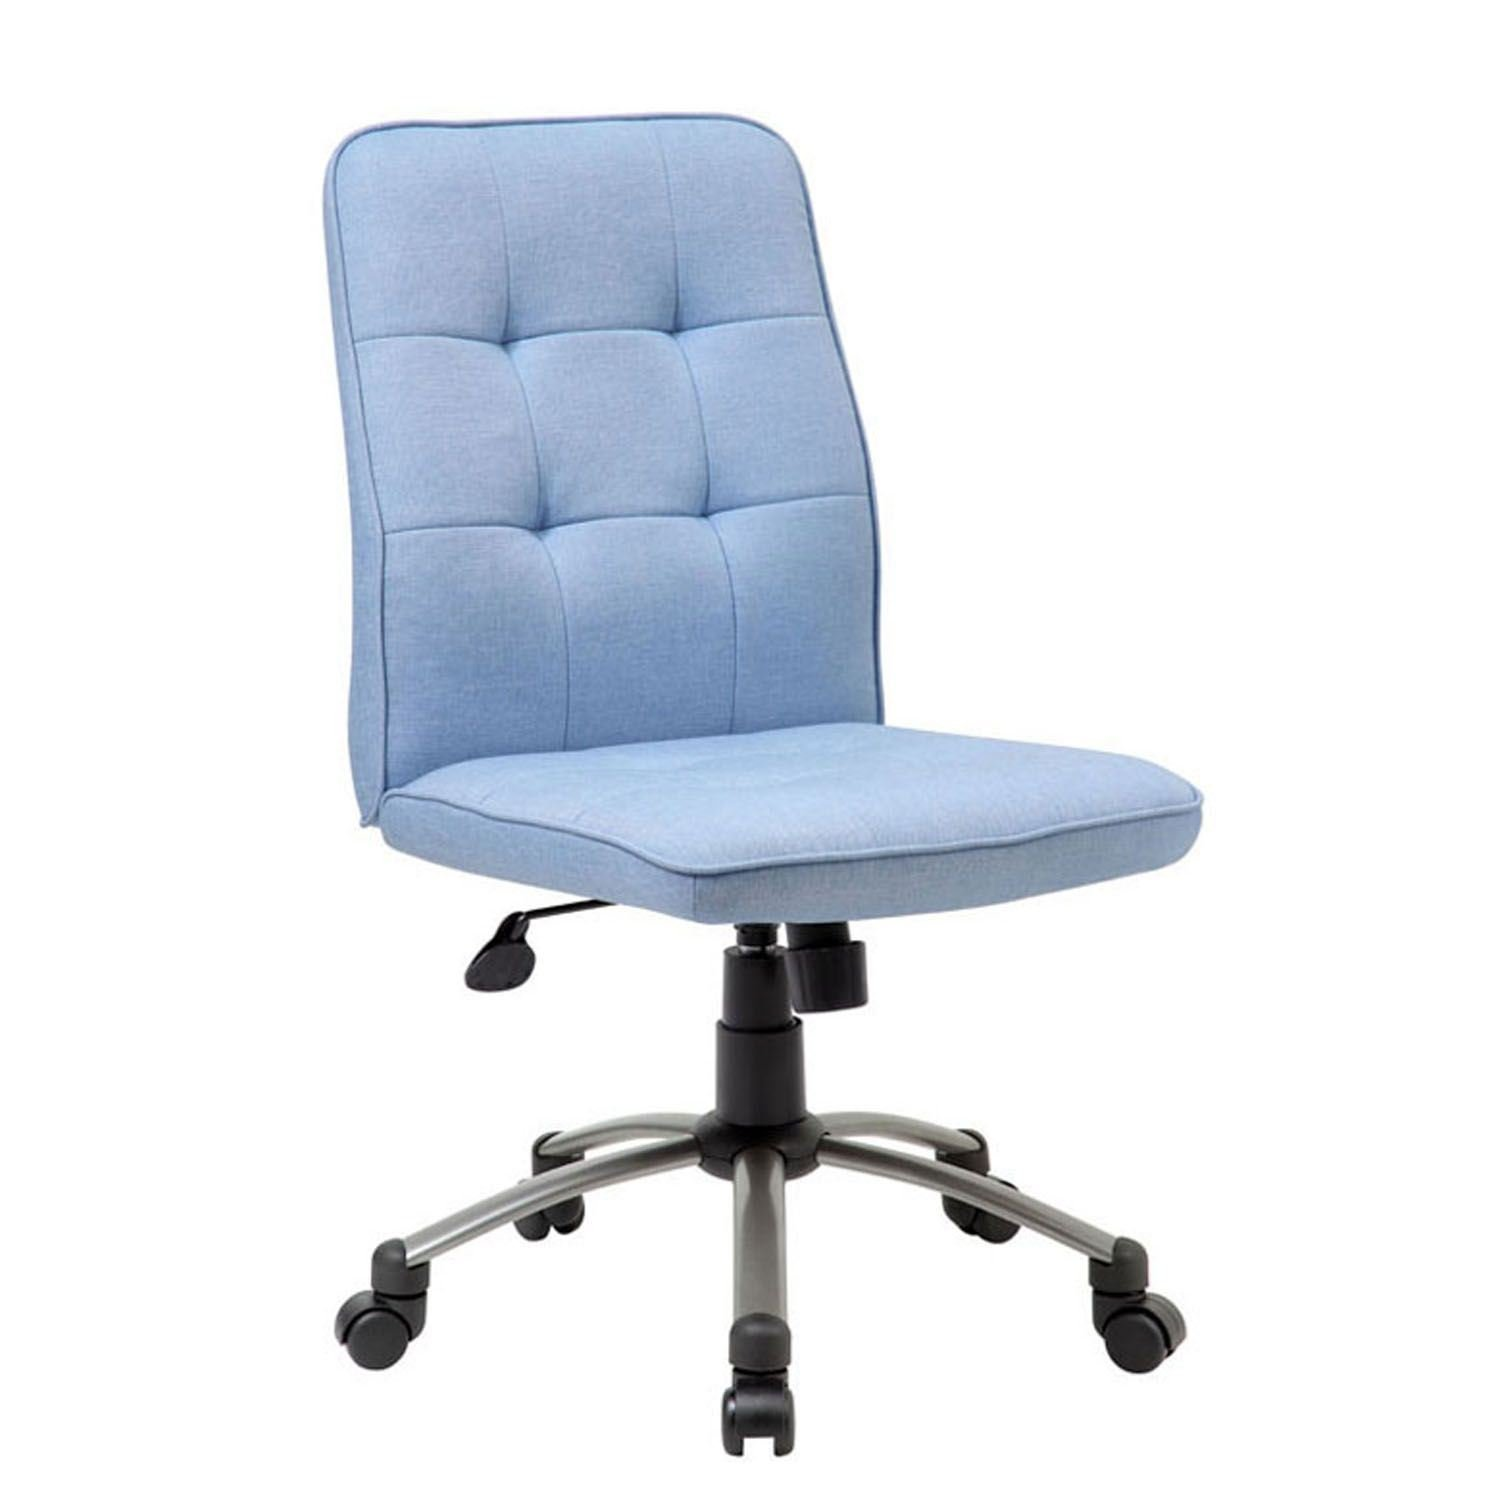 light blue desk chair modern lounge with ottoman office d b330pm lb